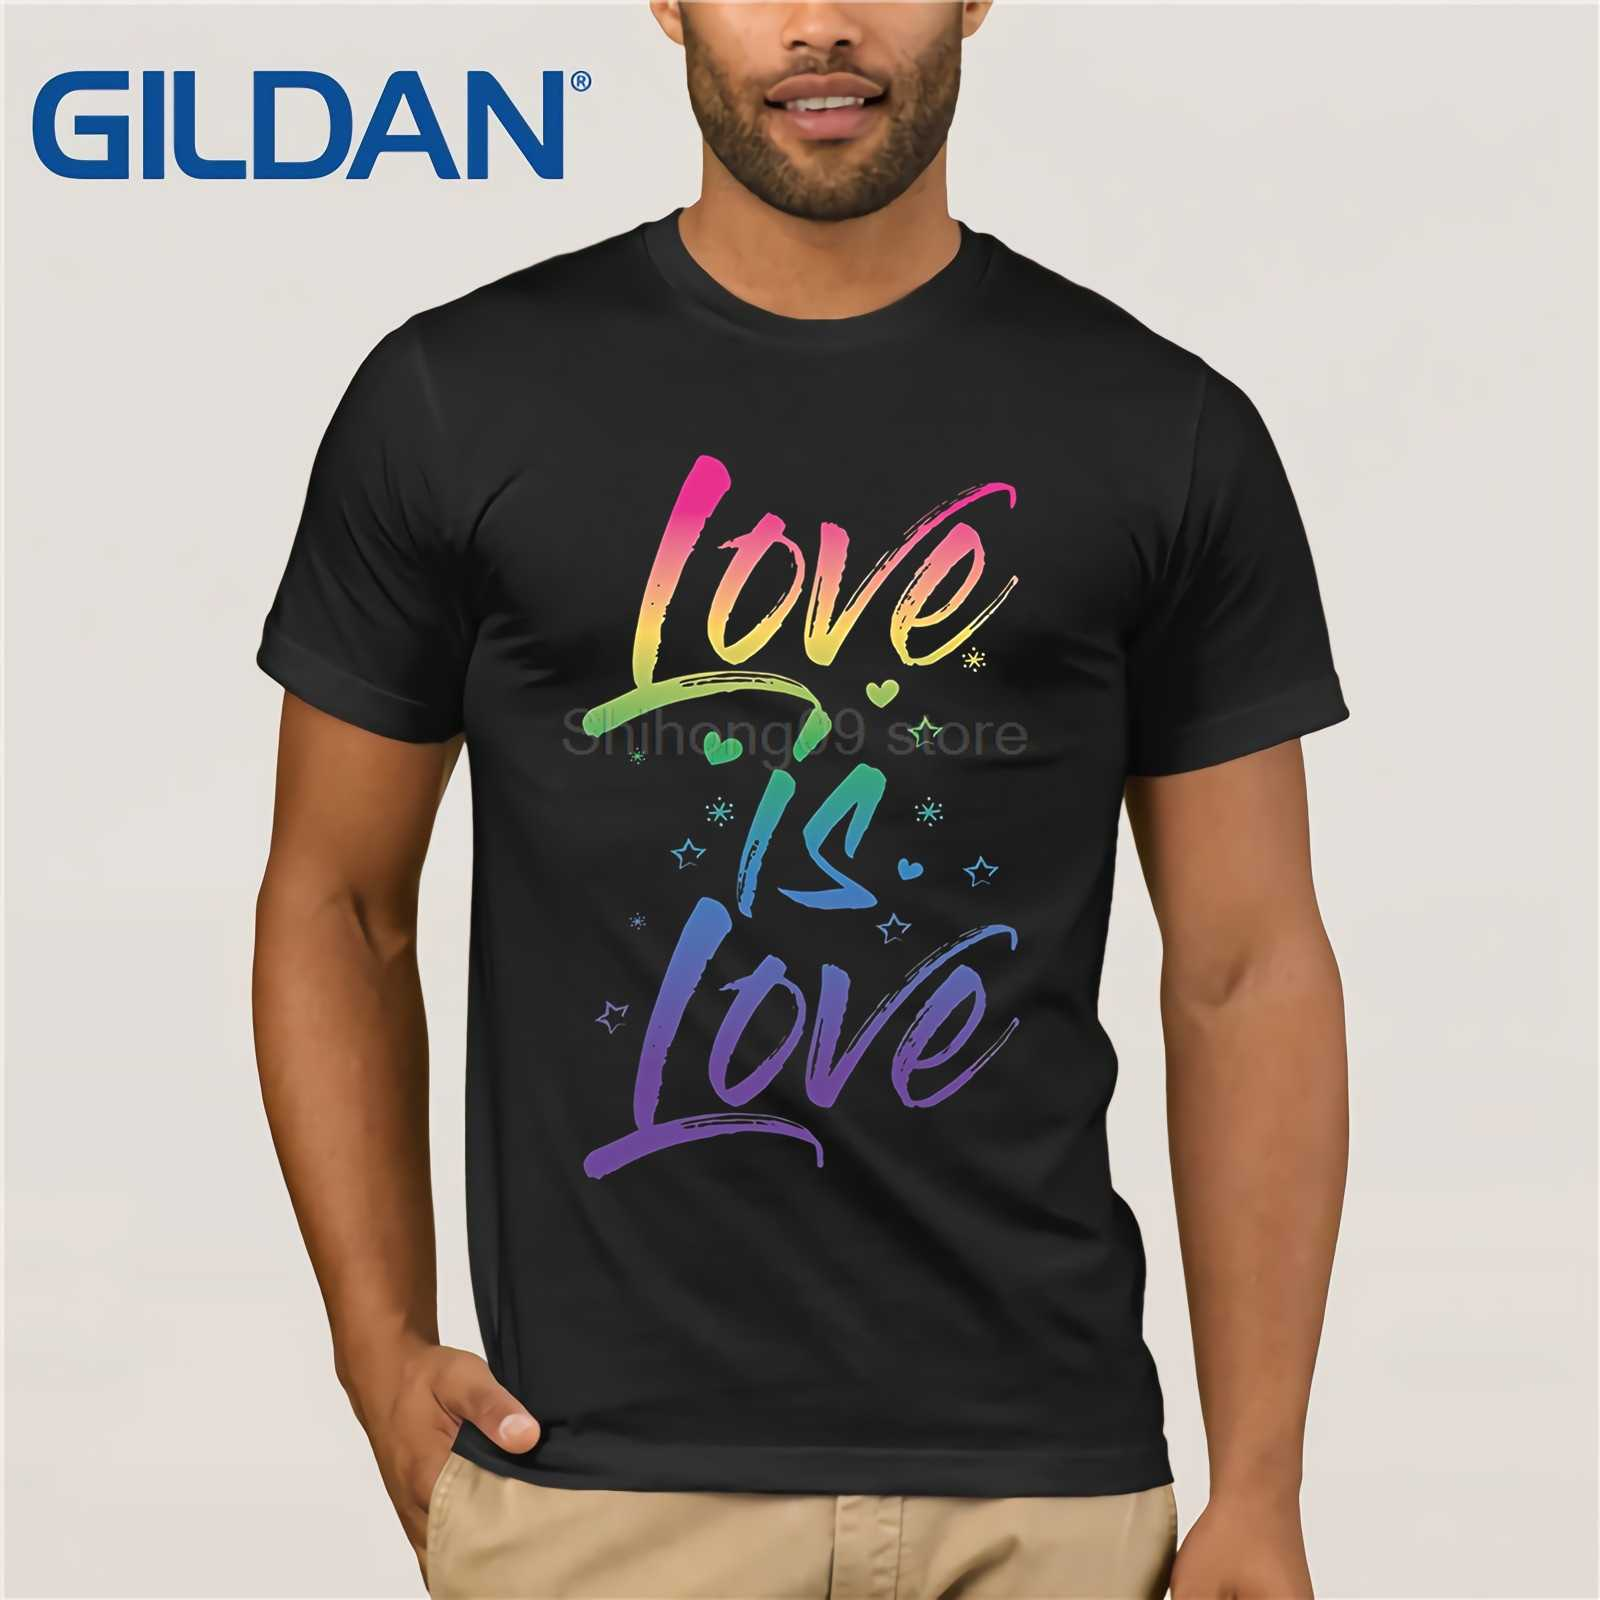 5d522d1b6 GILDAN Gay Pride Shirt Rainbow Script Love is Love LGBT Cute TShirt Funny  men's print t